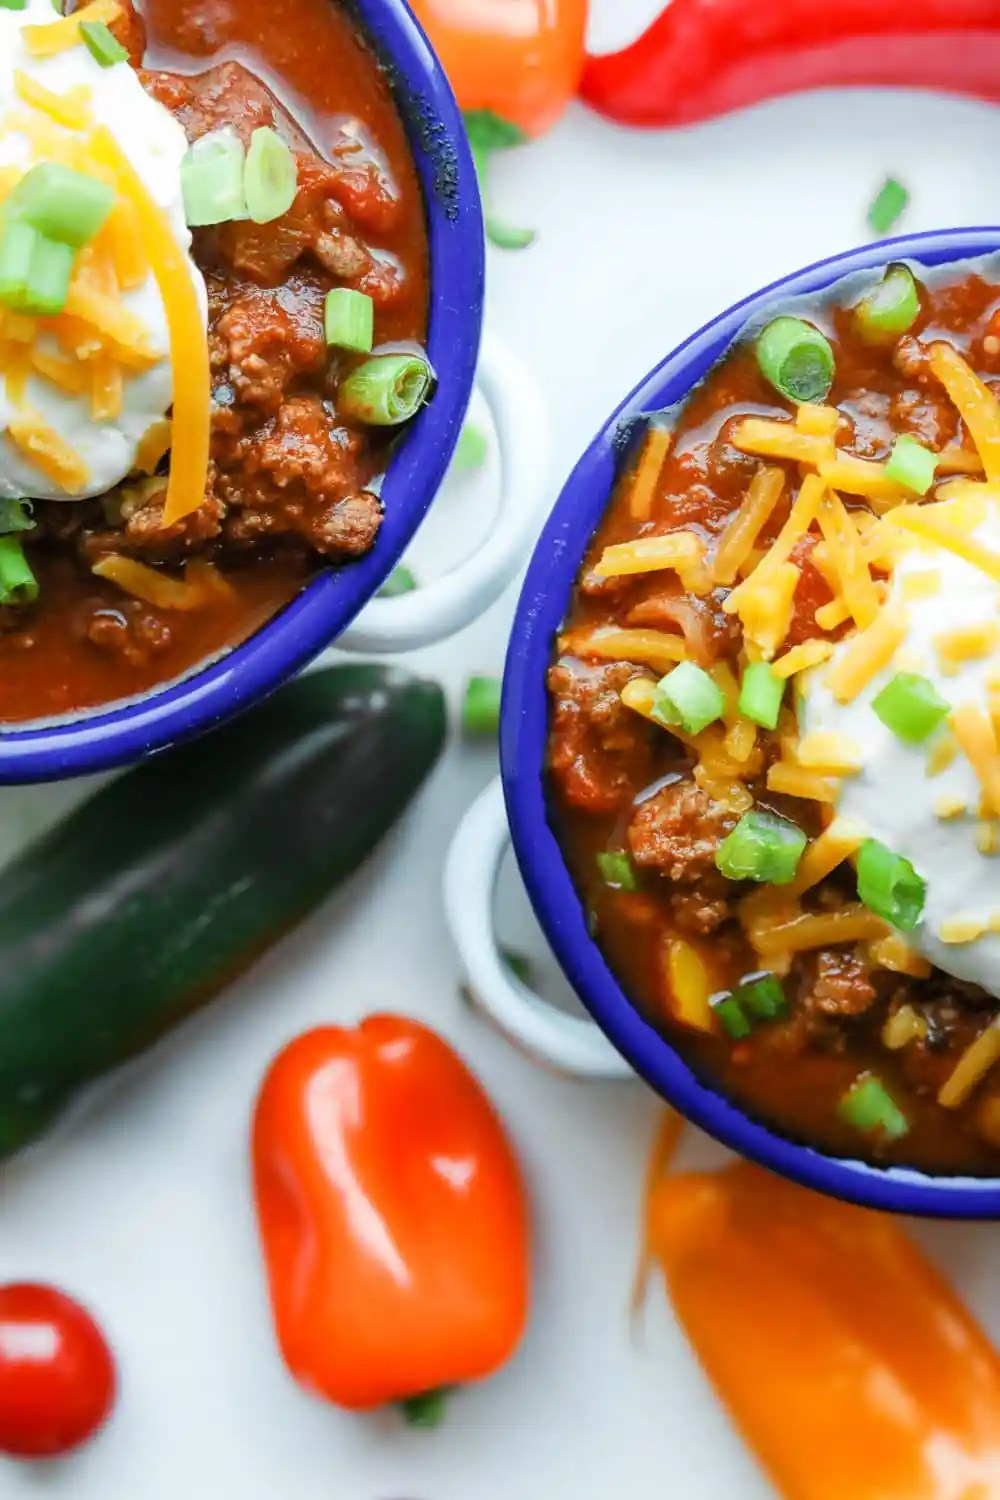 2 Bowls of chili next to each other.